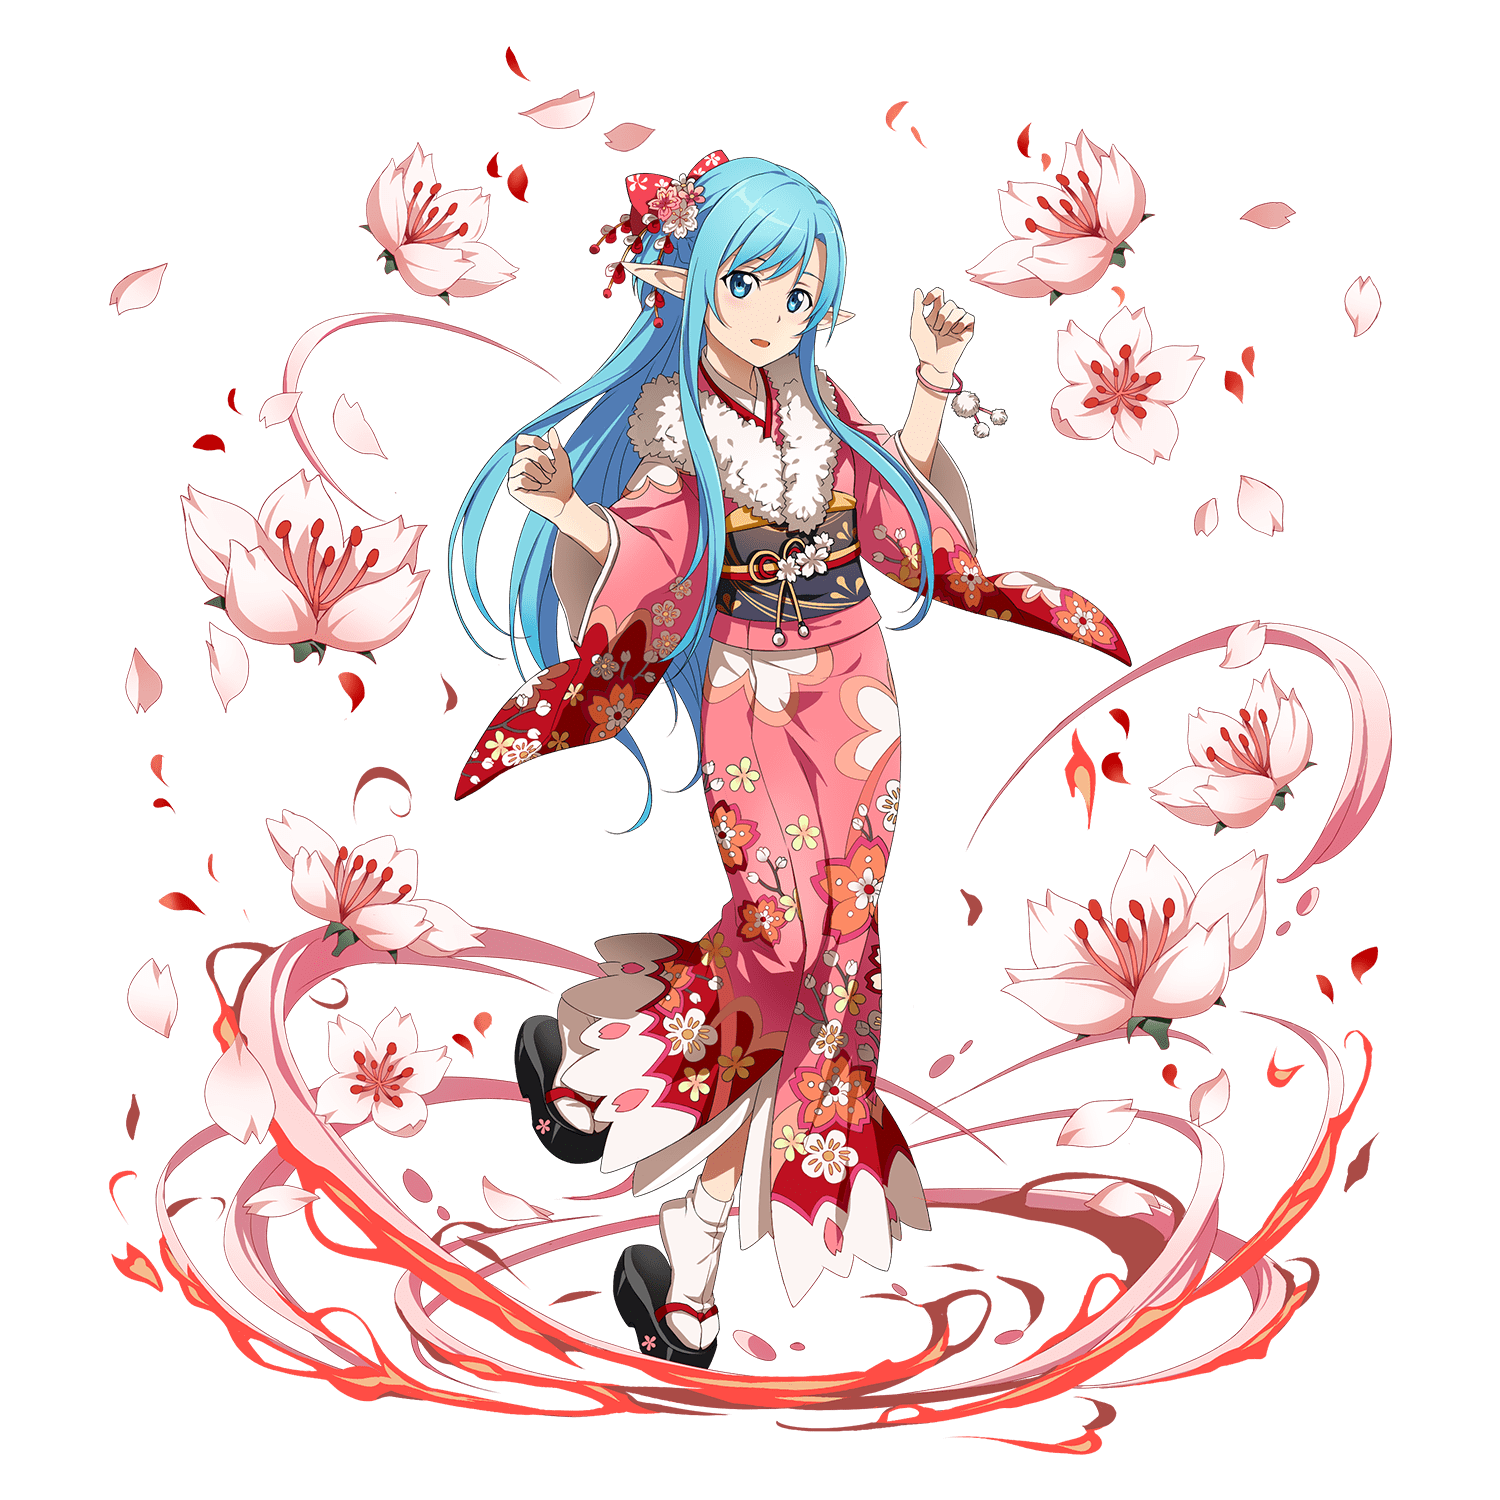 1girl asuna_(sao) asuna_(sao-alo) blue_eyes blue_hair bracelet braid floral_print flower french_braid full_body hair_flower hair_ornament highres japanese_clothes jewelry kimono long_hair long_sleeves obi official_art open_mouth petals platform_footwear pointy_ears sandals sash solo sword_art_online tabi wide_sleeves